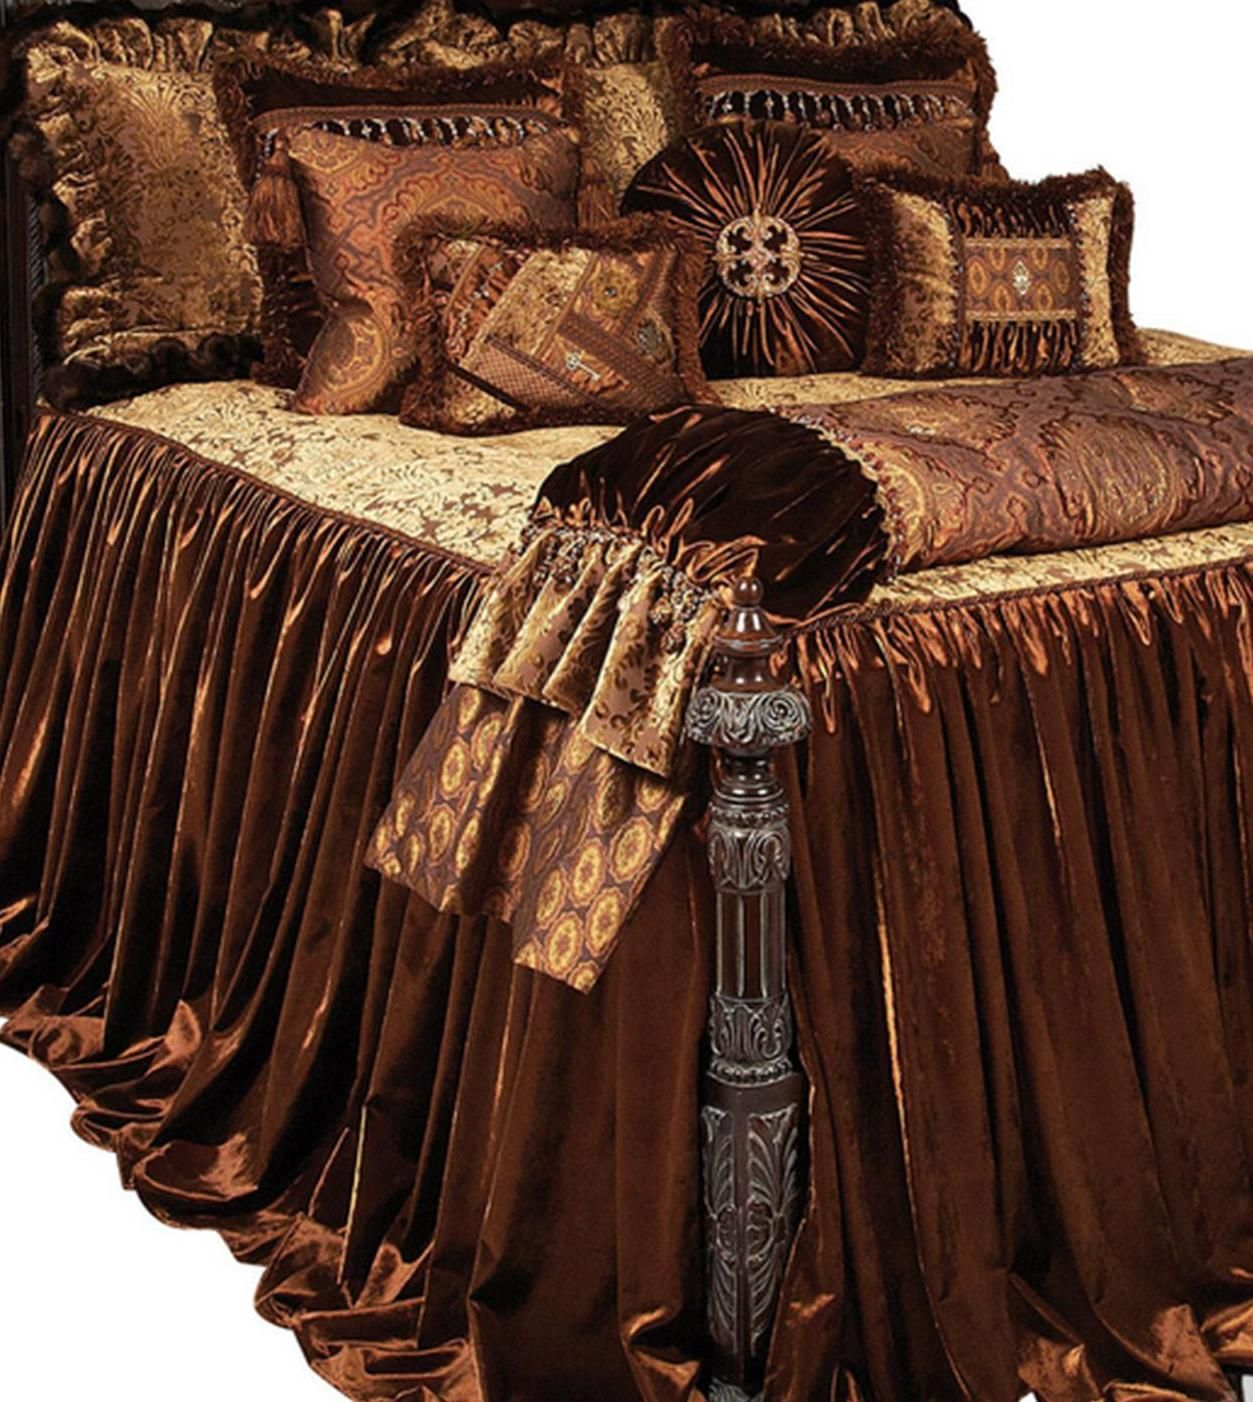 Luxury Tuscan Style High End Bedding And Accent Pillows By Reilly Chance Collection Brussels Luxury Bedding Bed Linens Luxury Luxury Bedding Sets